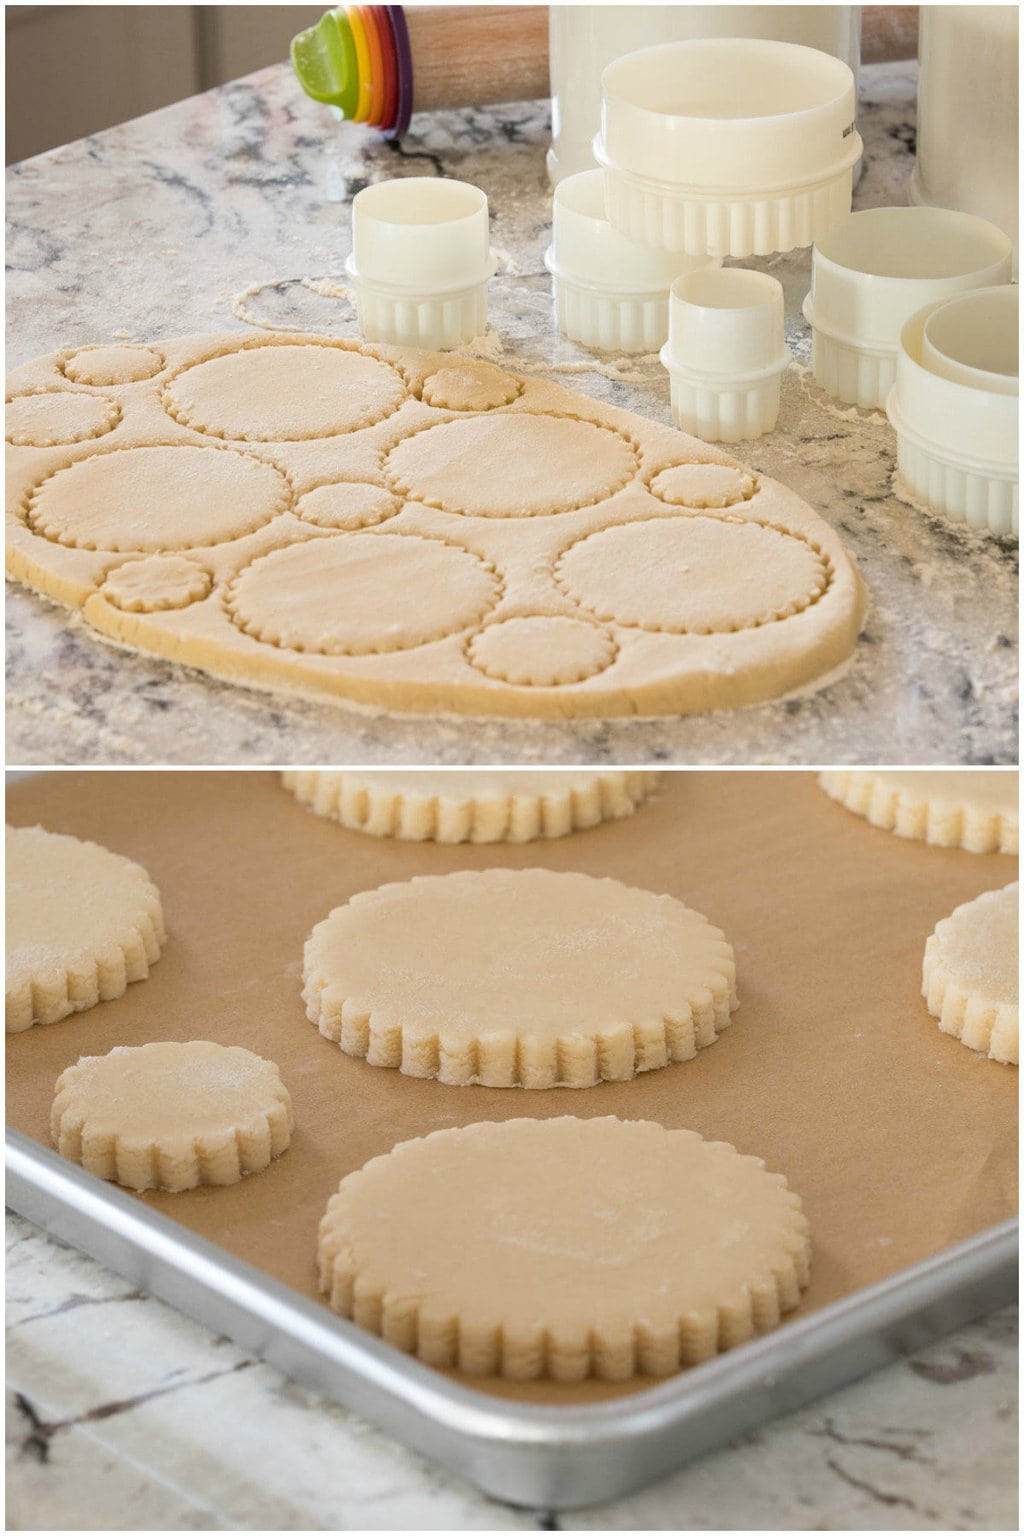 Photo collage of how to cut out Easy Decorated Shortbread Cookies from rolled dough.